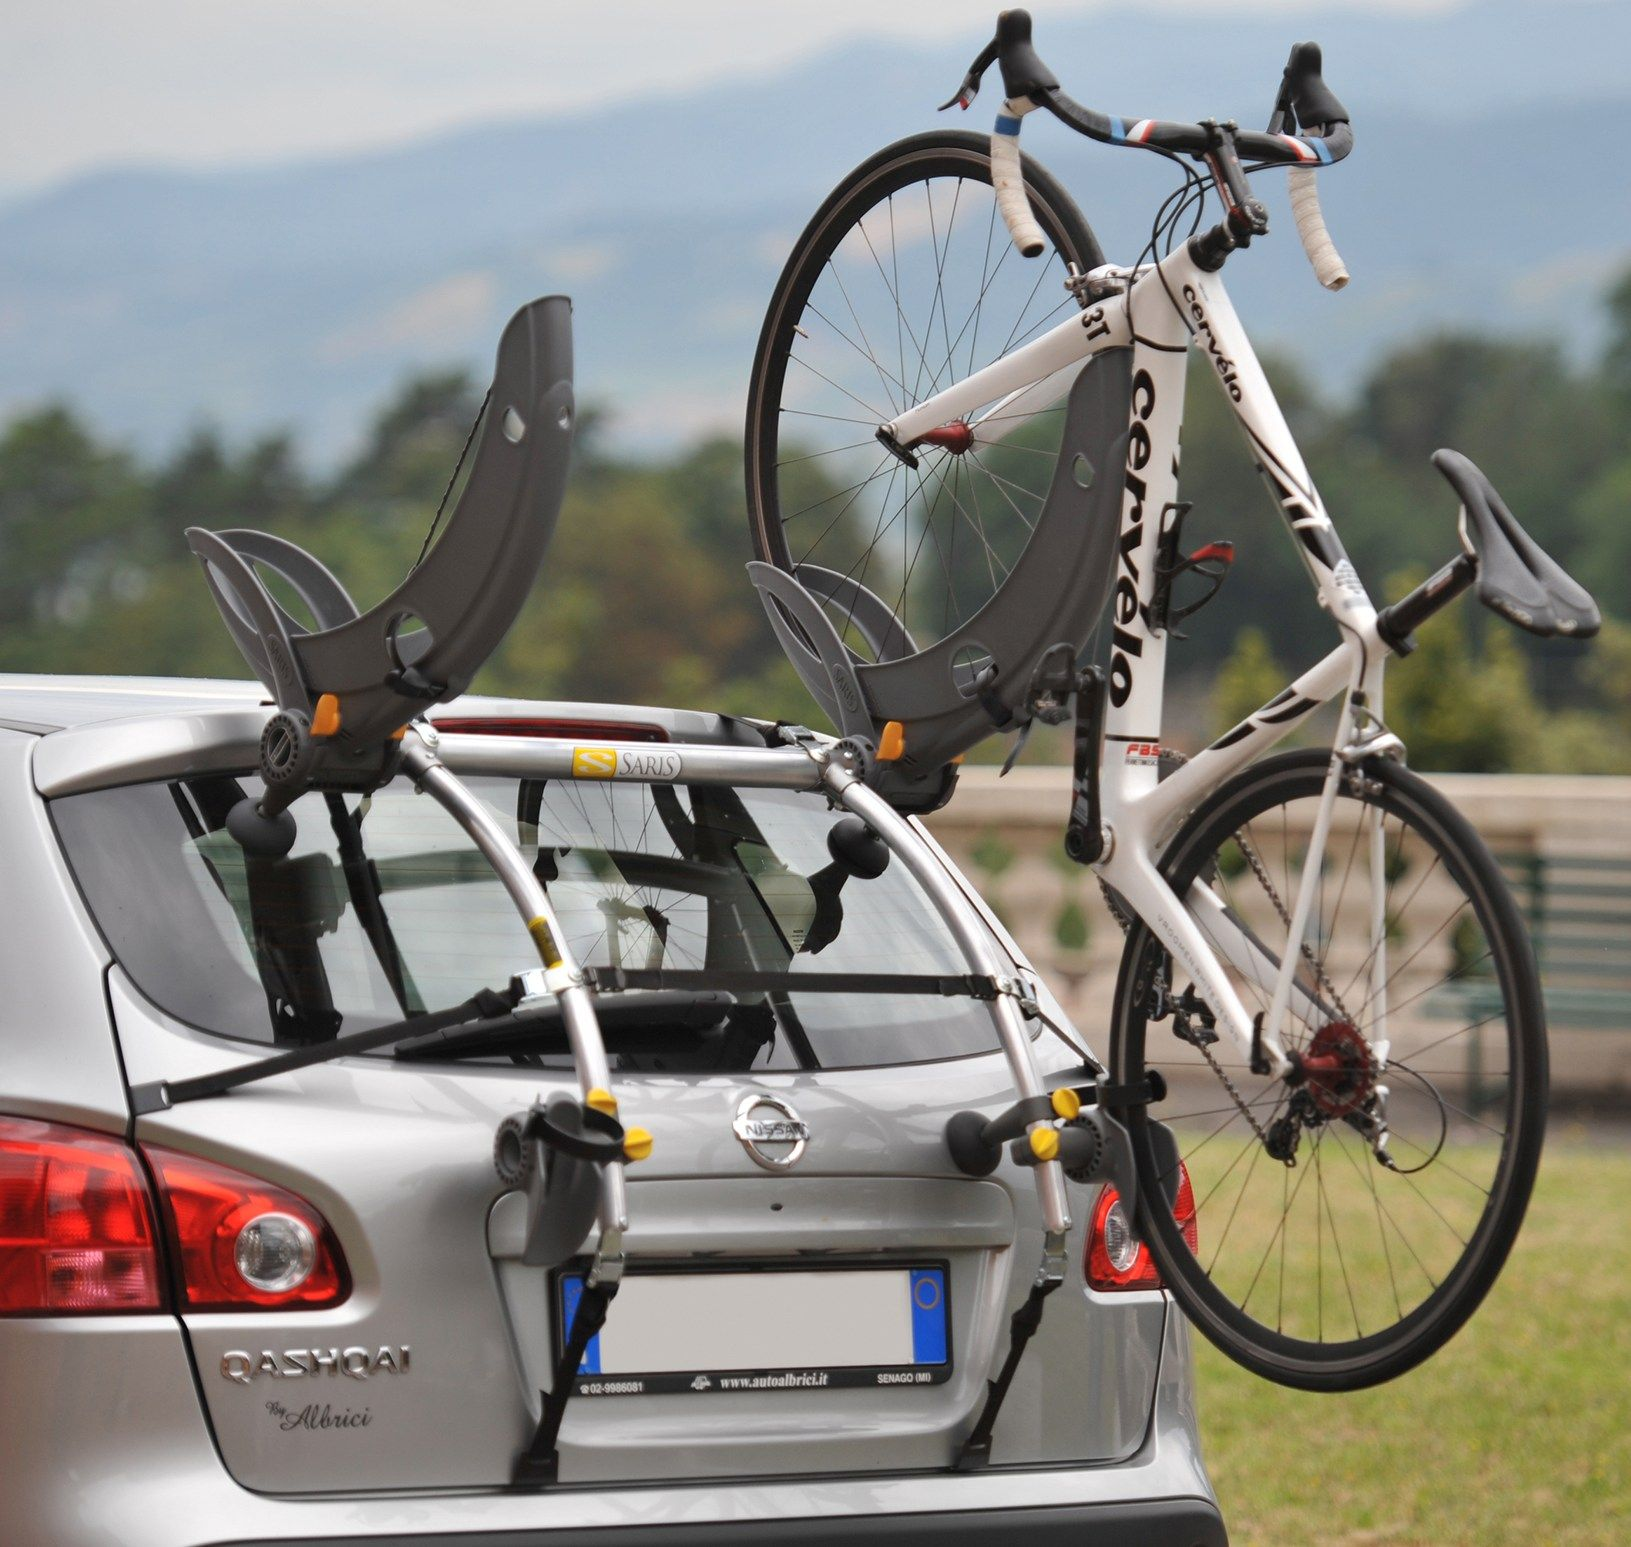 Saris Gran Fondo 2 Bike Trunk Rack Car Bike Rack Best Bike Rack Bike